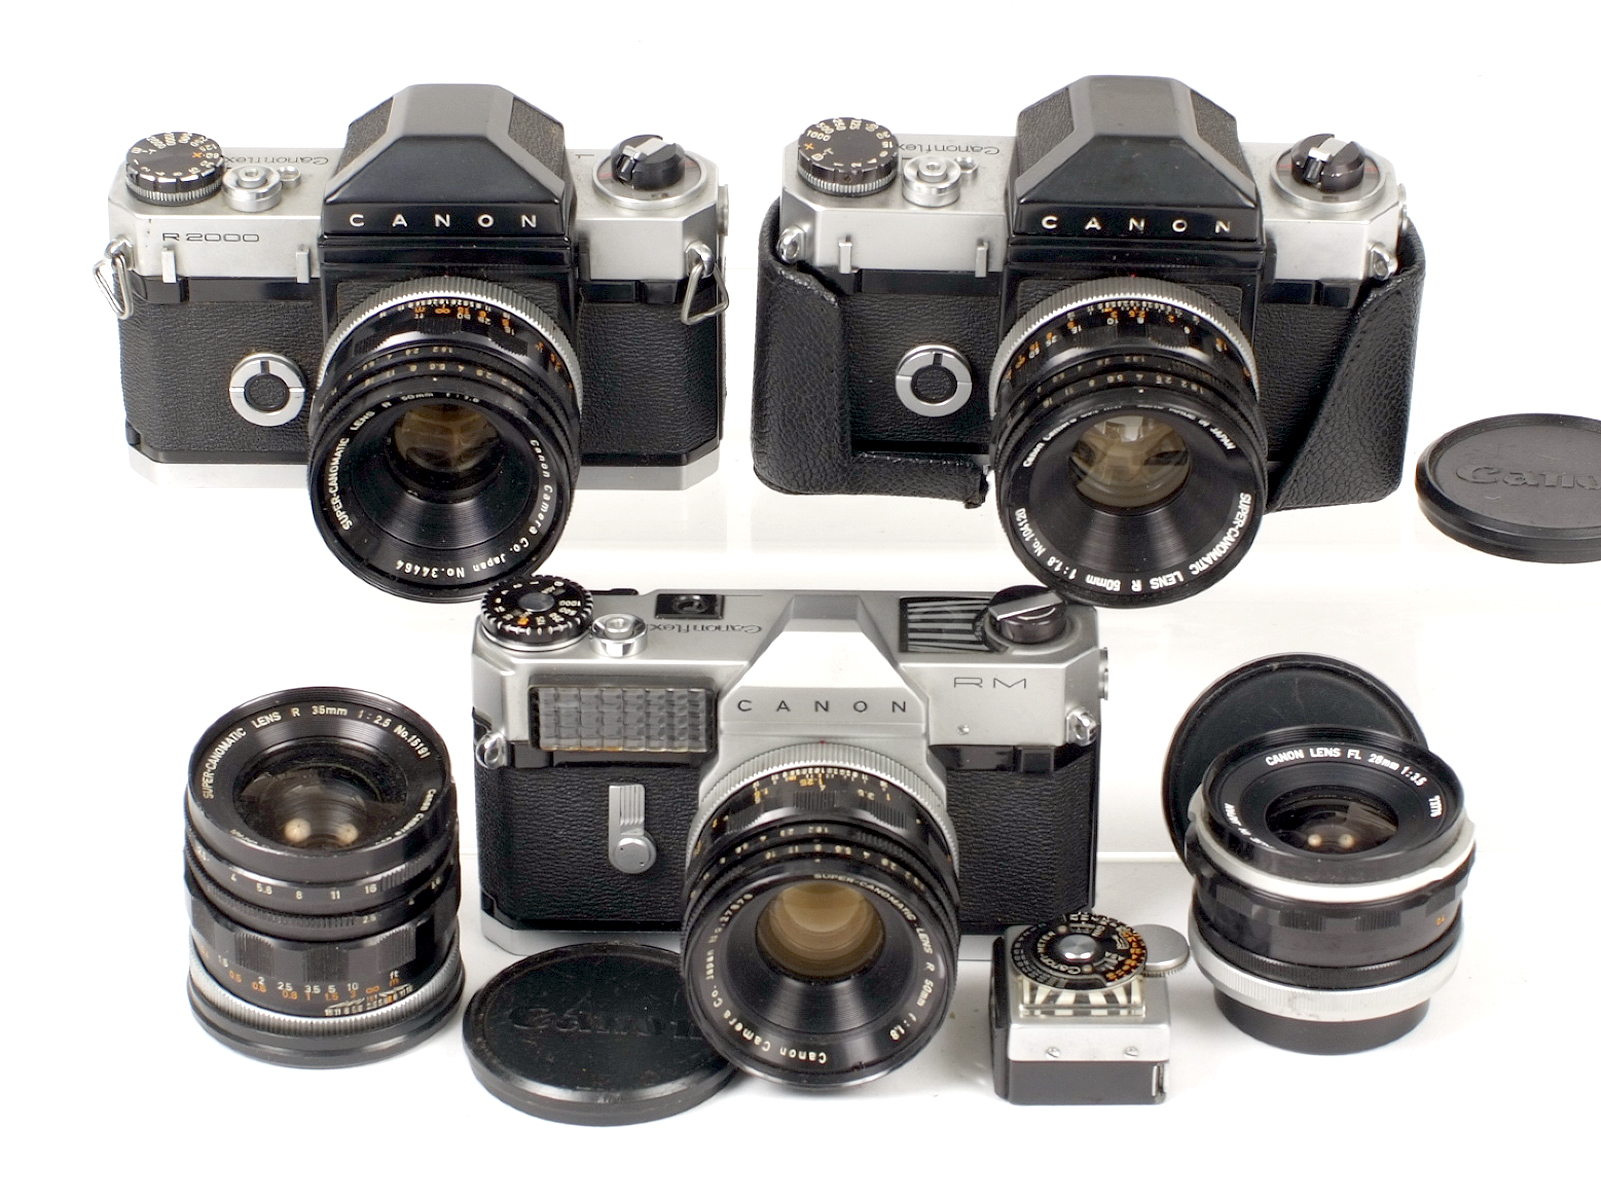 Lot 14 - A Collection of Canon Canonflex Cameras & Lenses. Comprising Canonflex RM with Super Canomatic